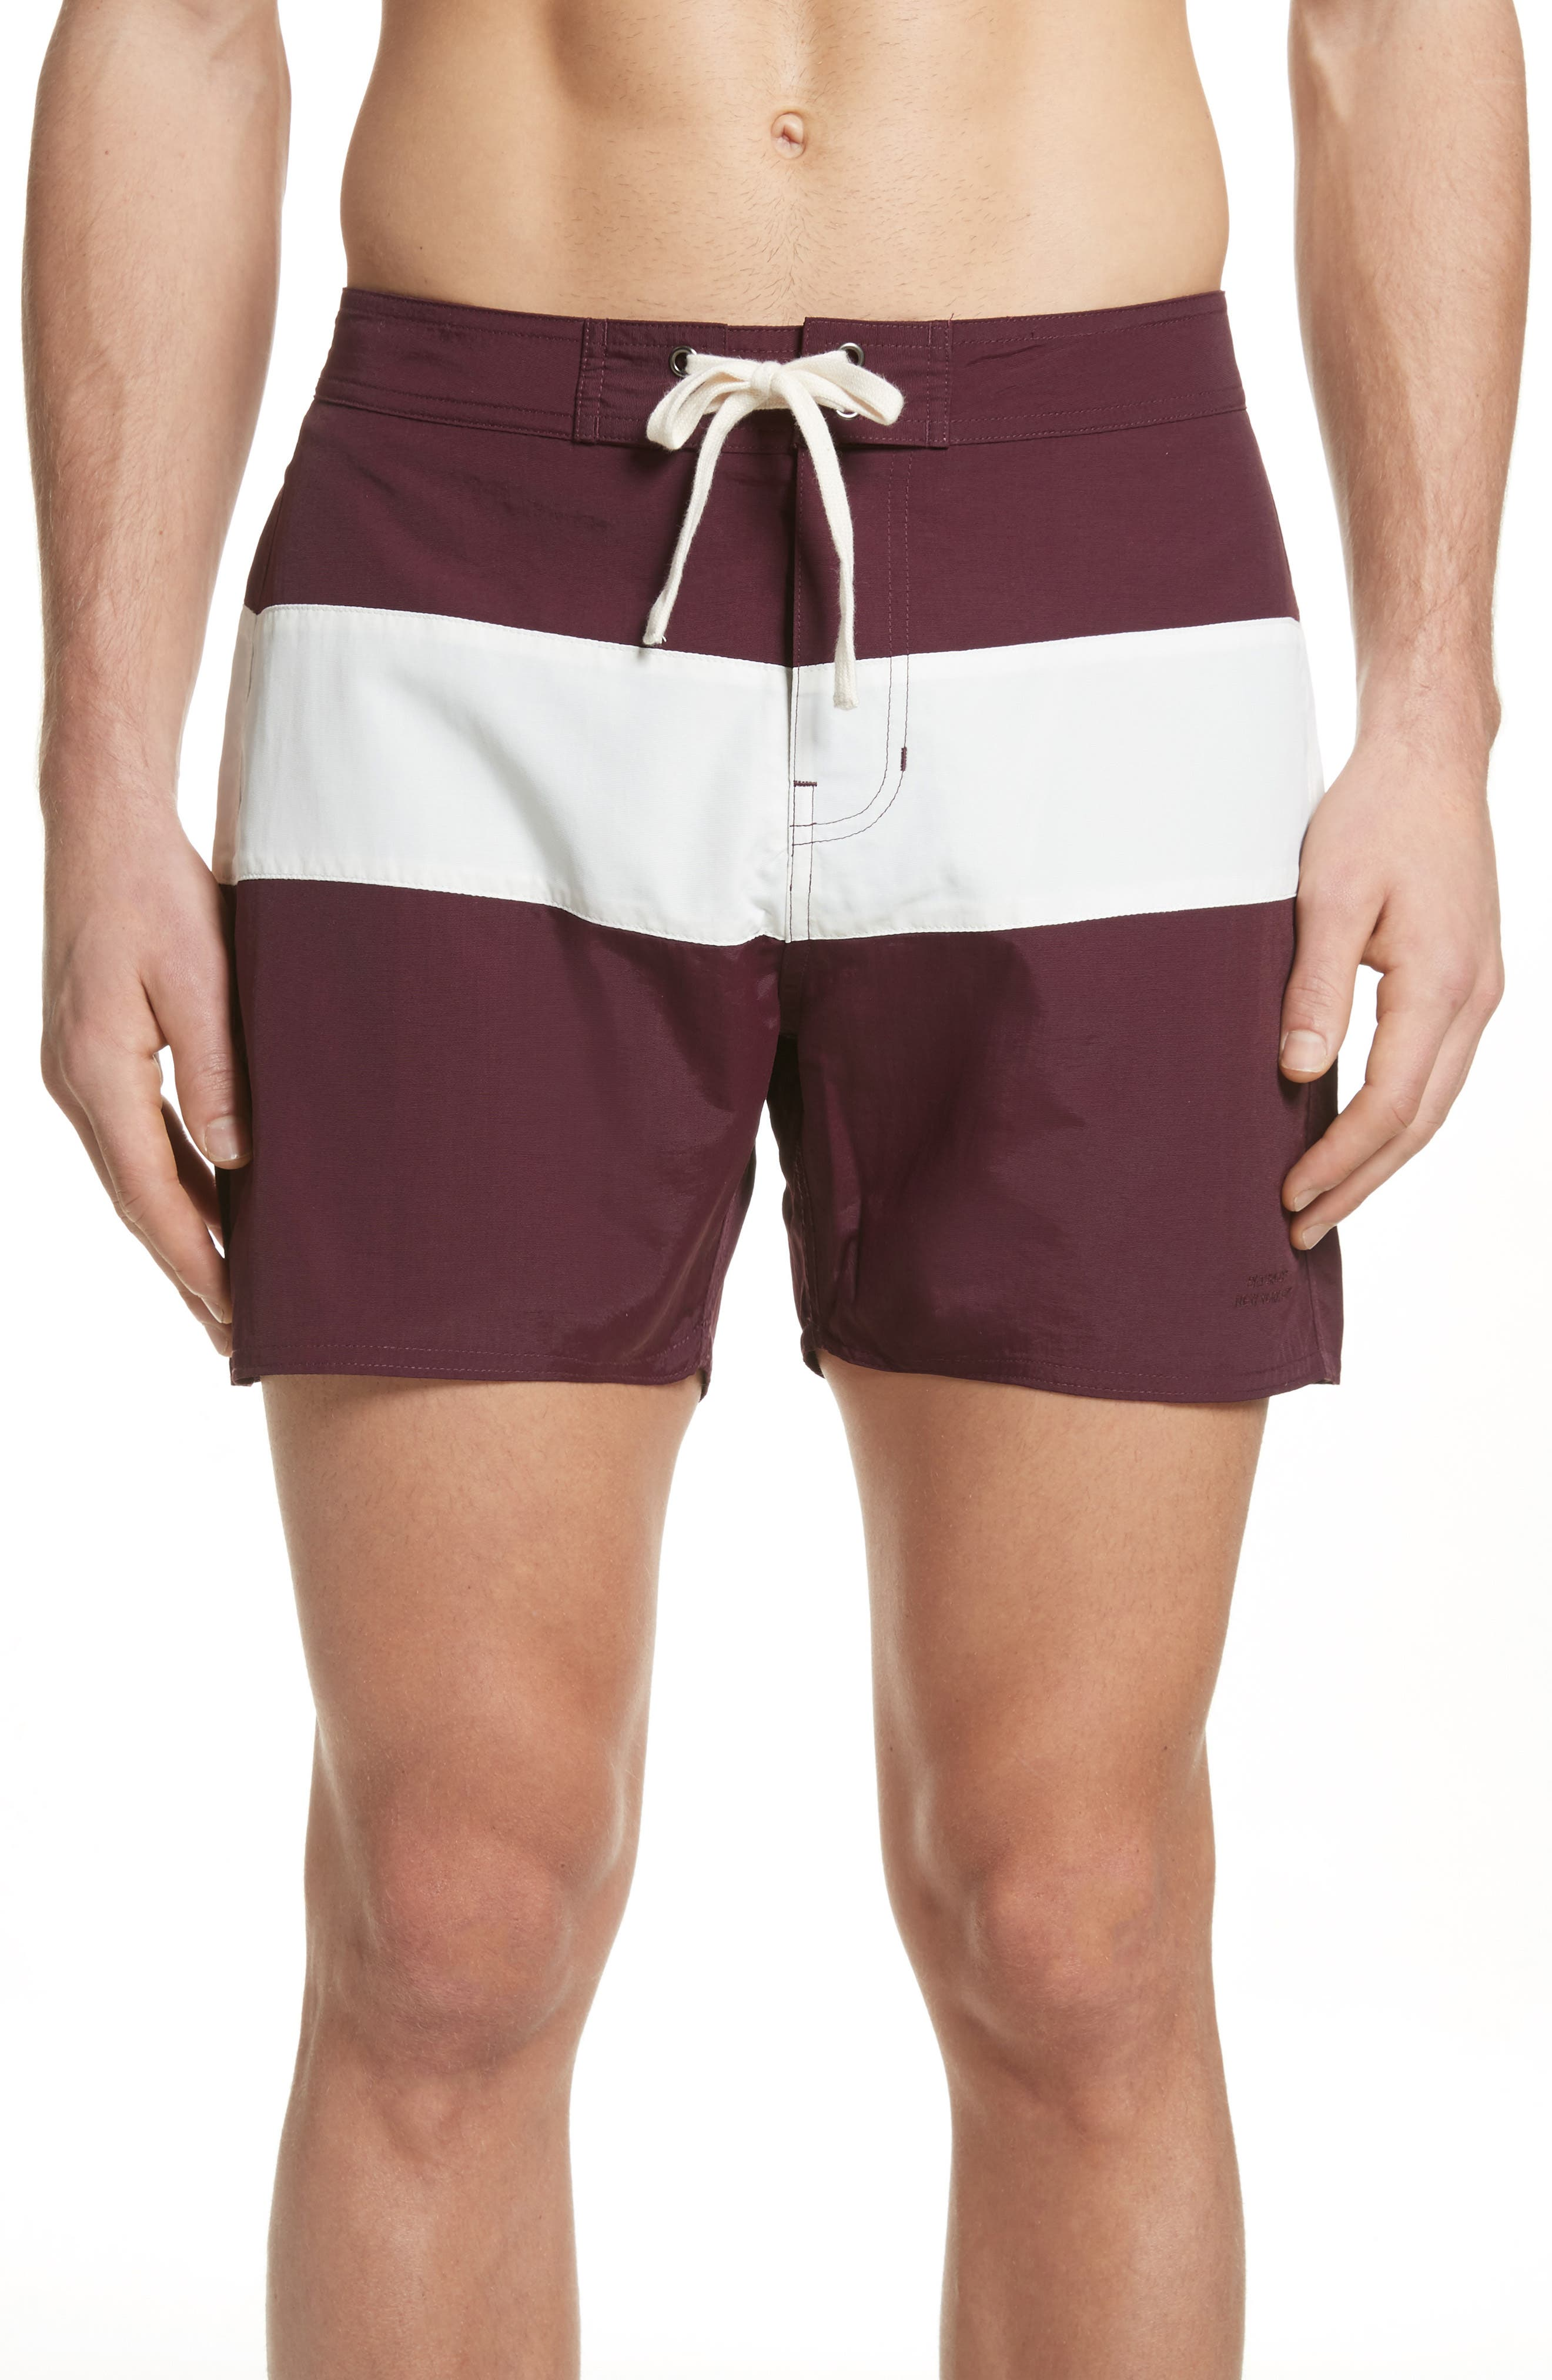 Grant Board Shorts,                             Main thumbnail 1, color,                             Dark Mauve/Ivory